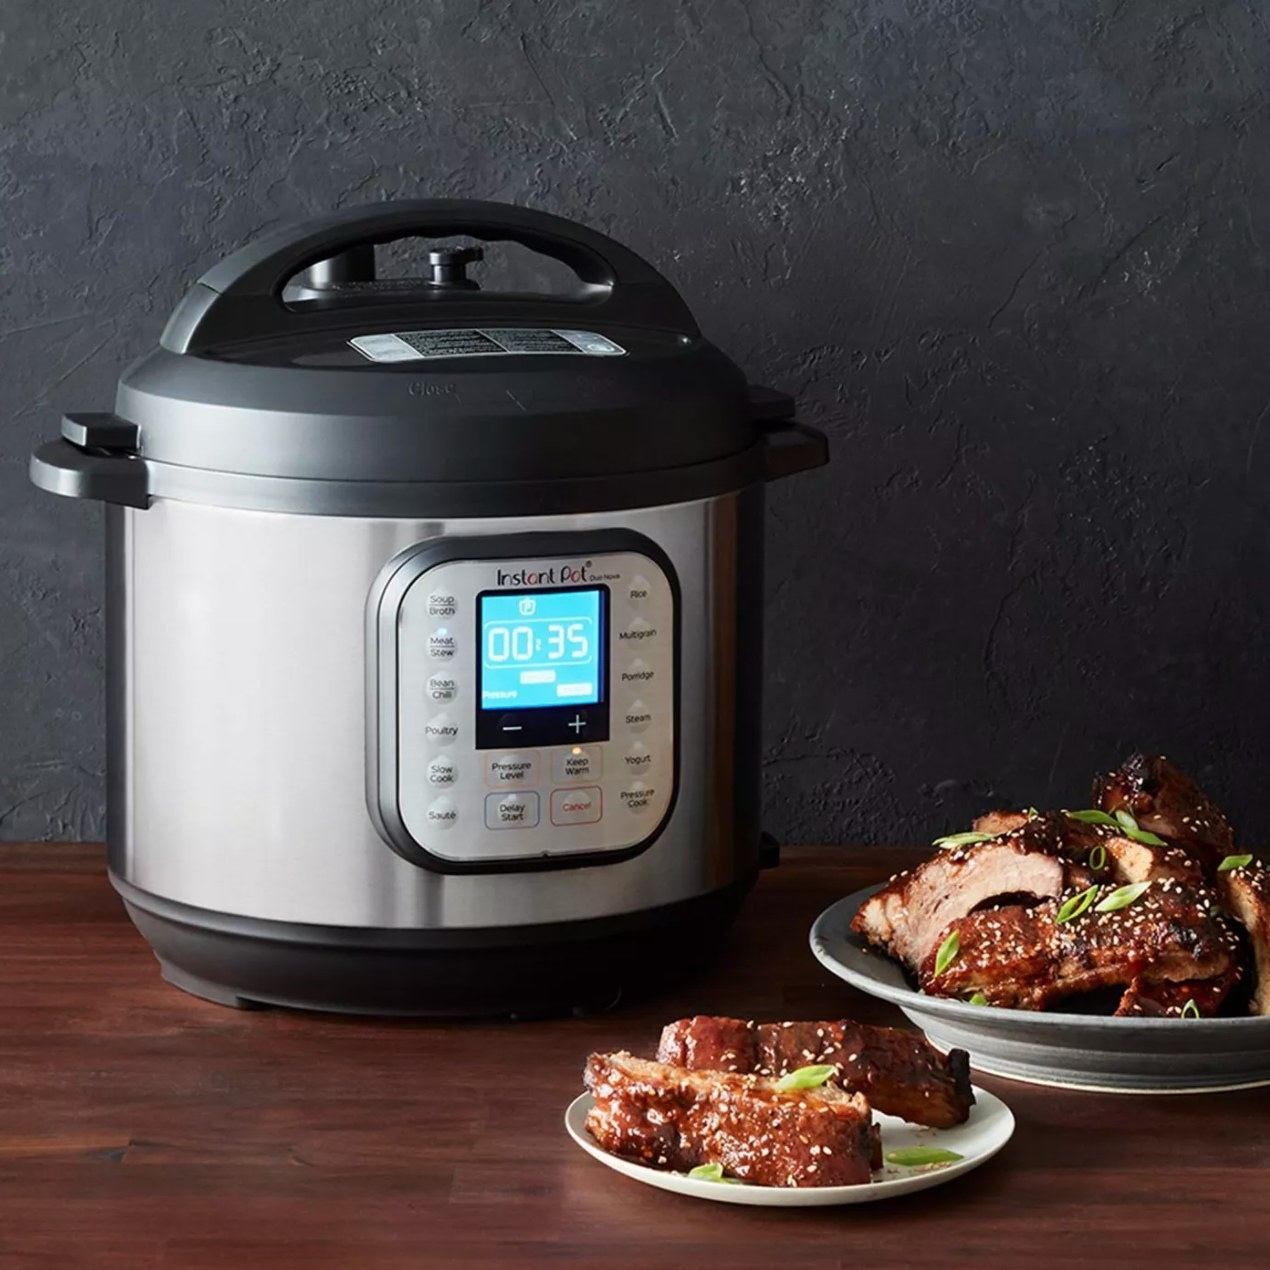 The instant pot being used to make sesame chicken